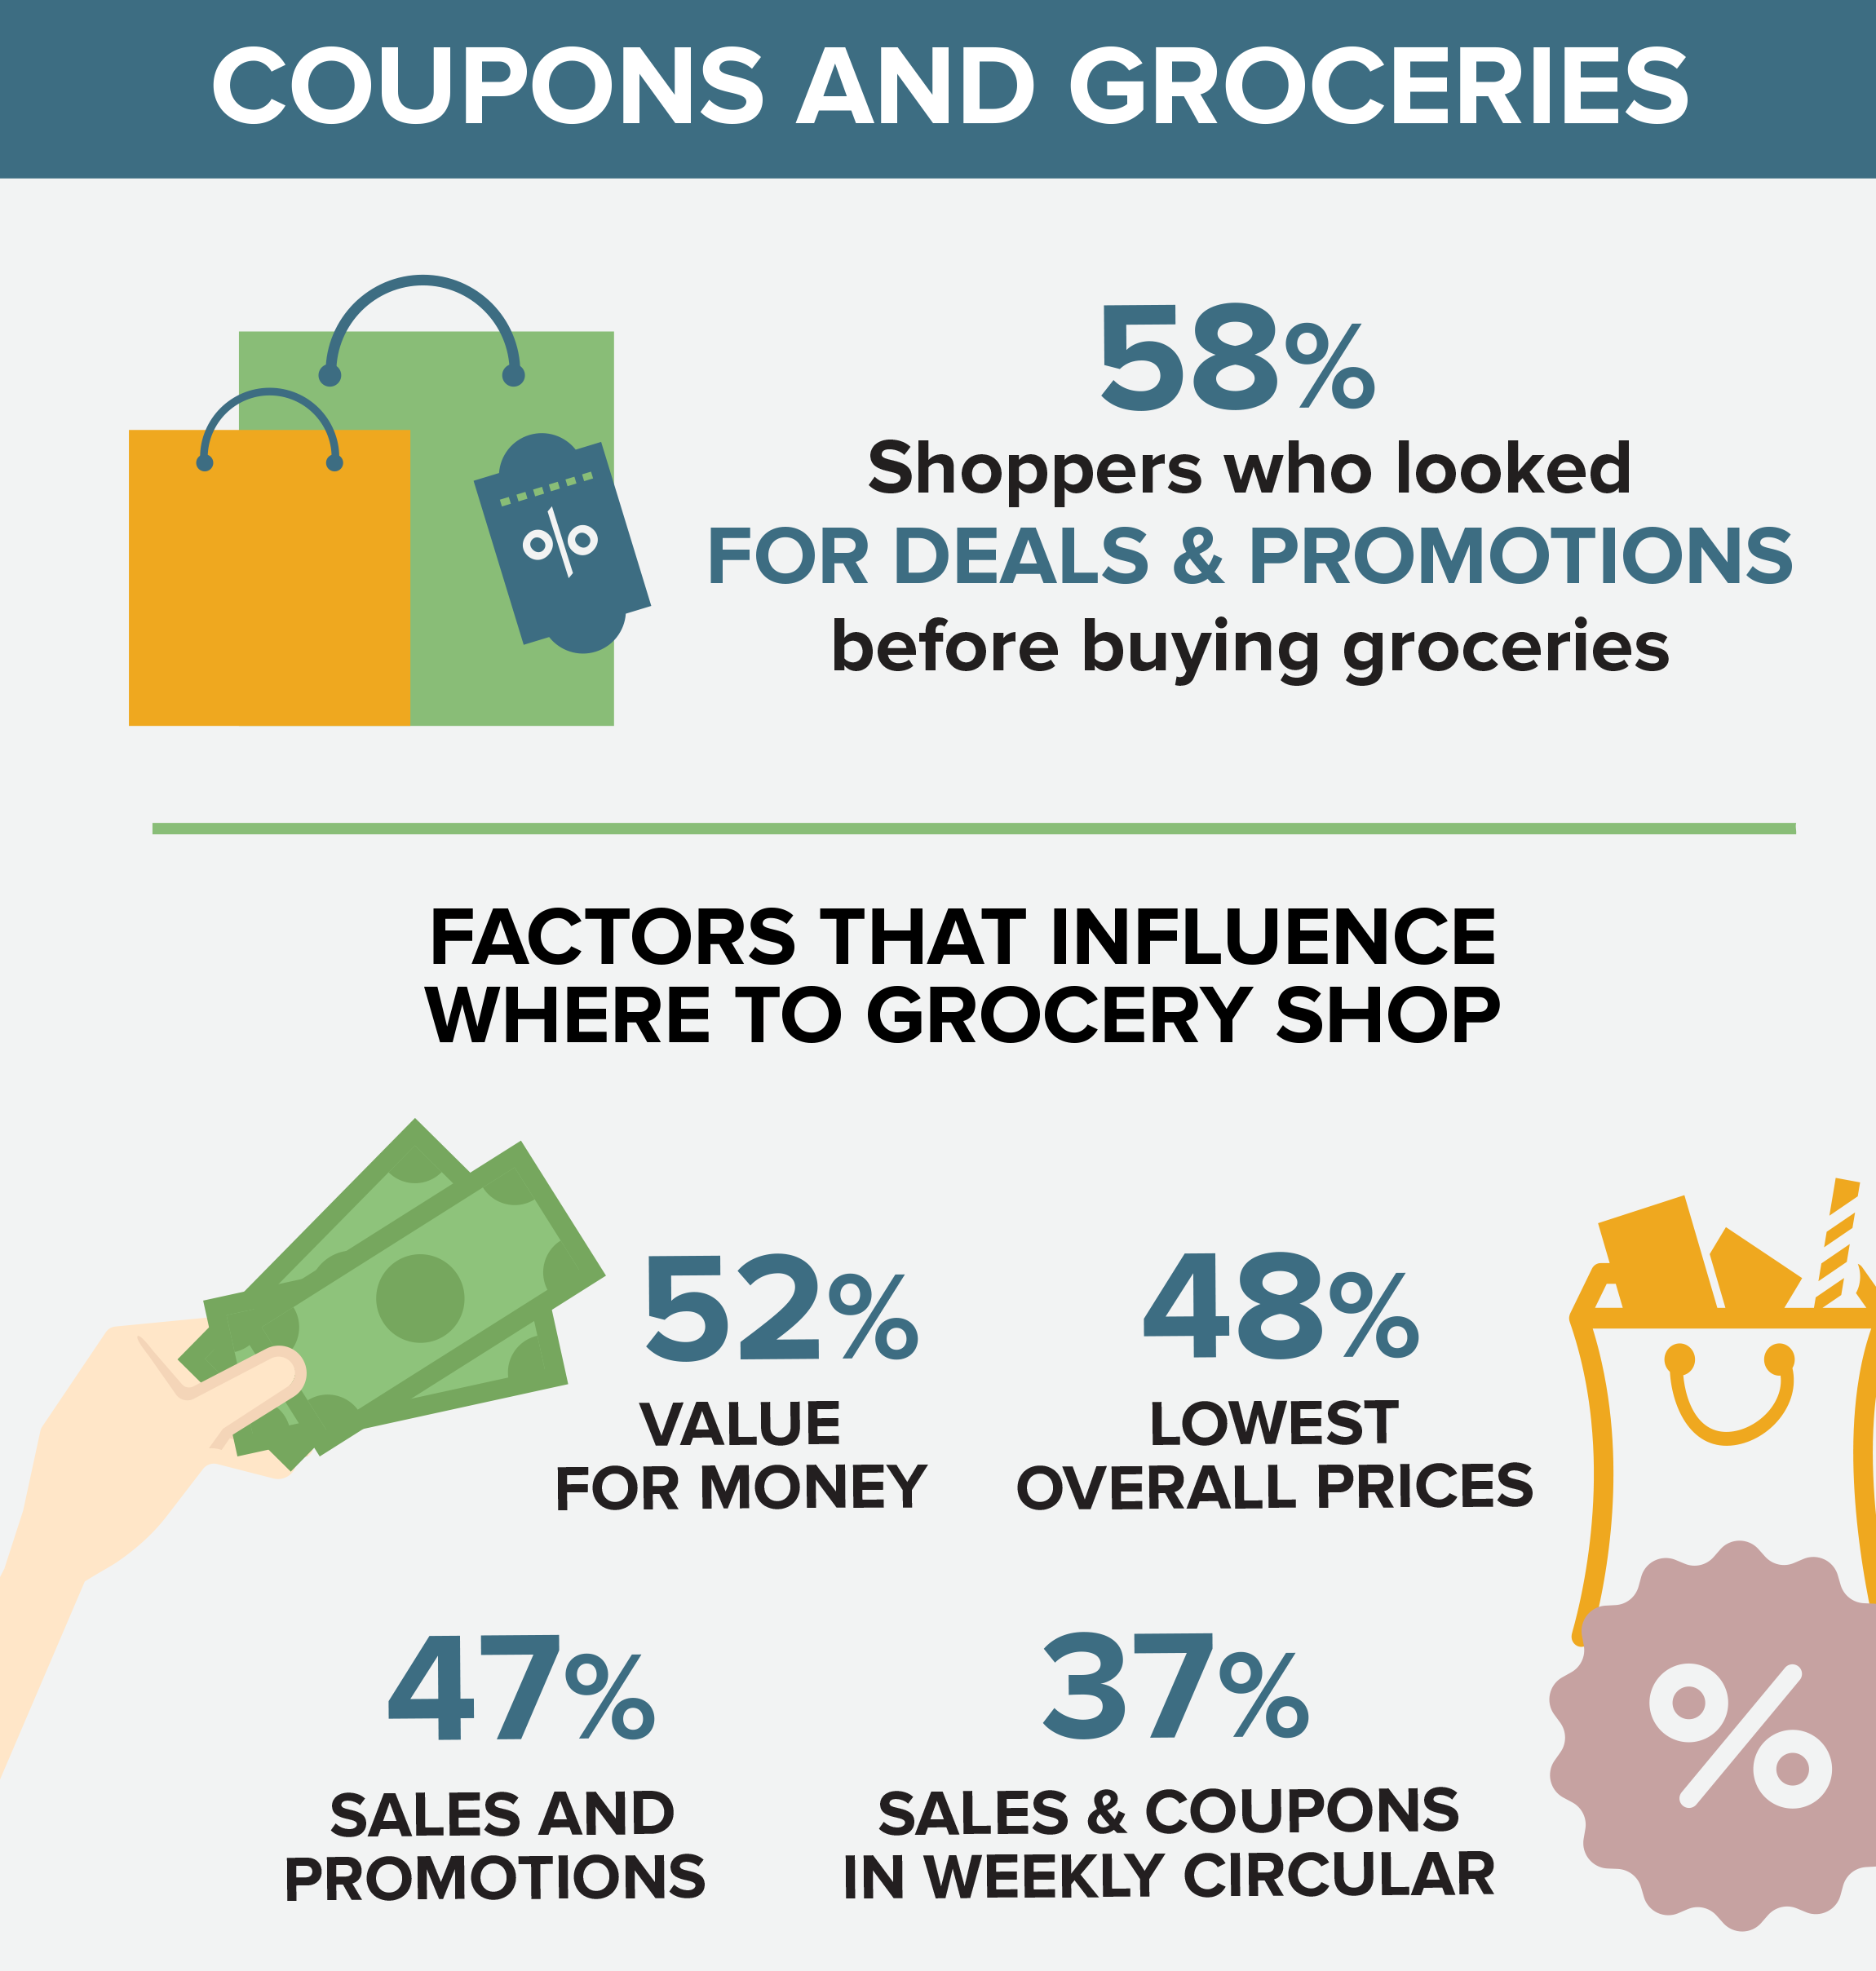 Coupons and groceries